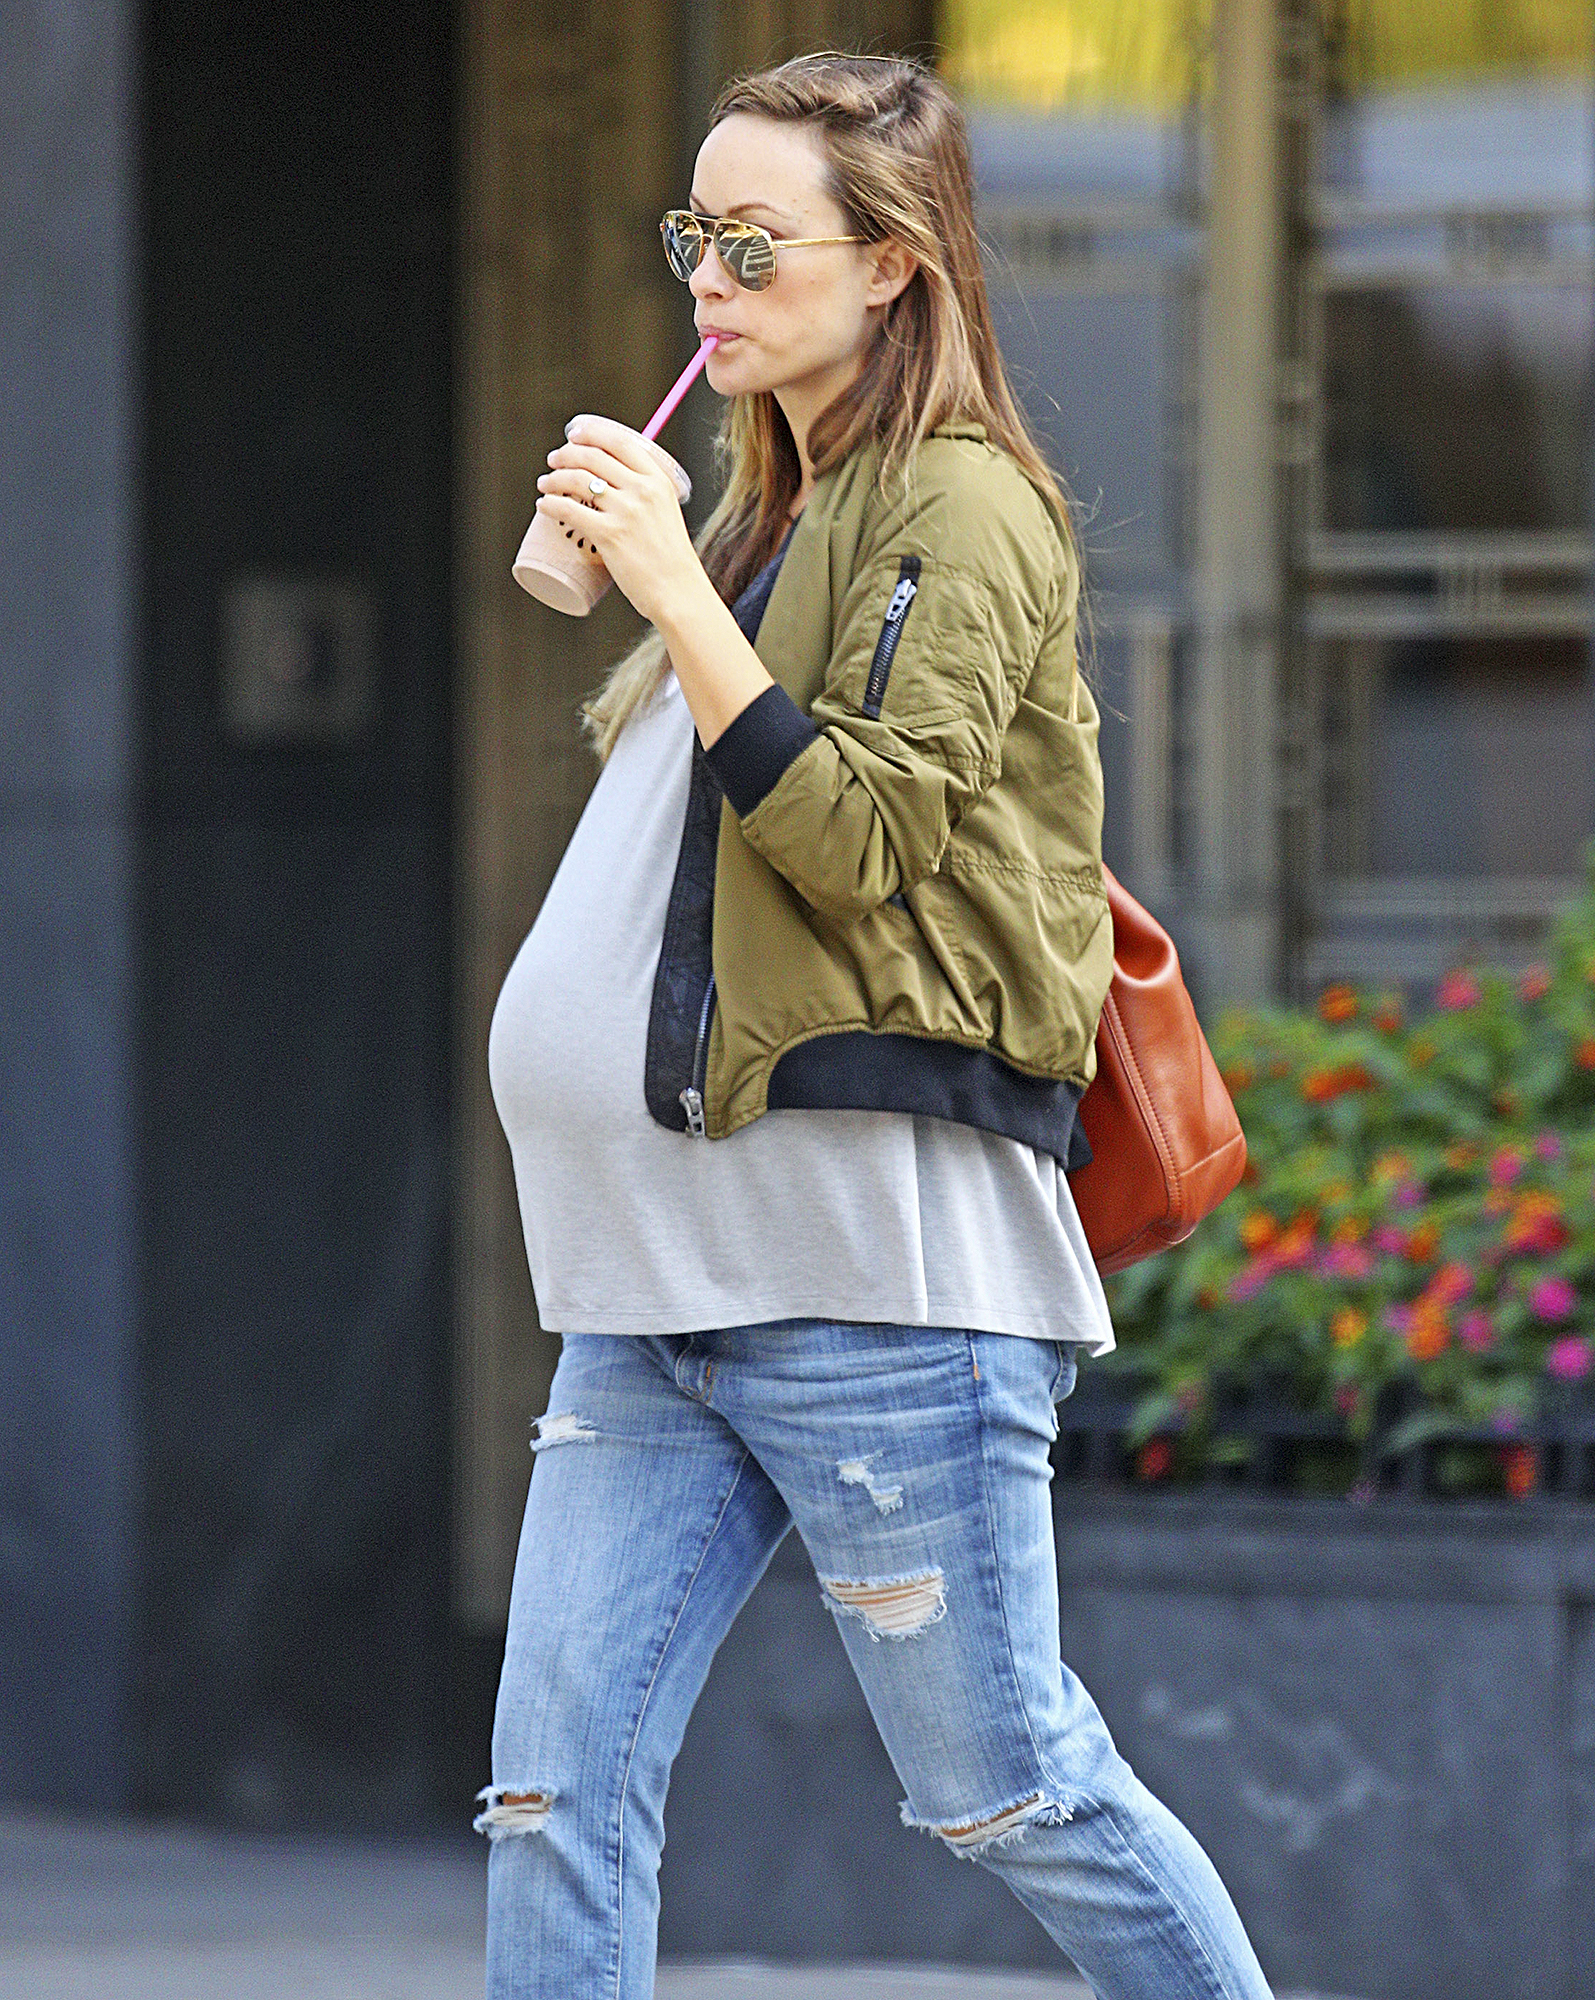 *EXCLUSIVE* Olivia Wilde shows off her massive baby bump as she relaxes in Central Park